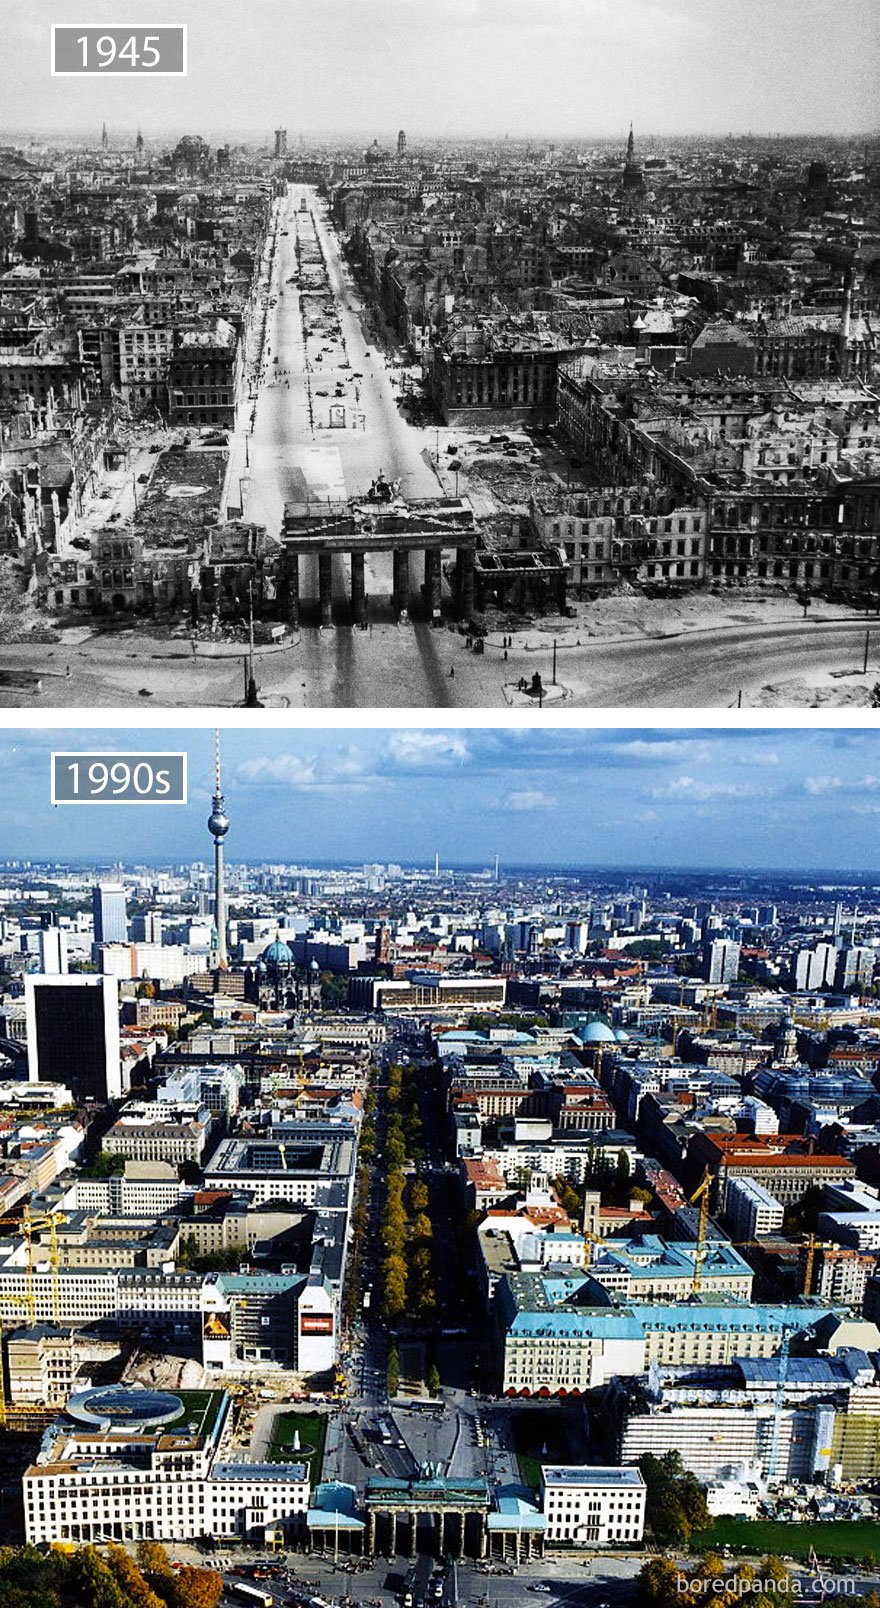 how-famous-city-changed-timelapse-evolution-before-after-30-577f568726933__880